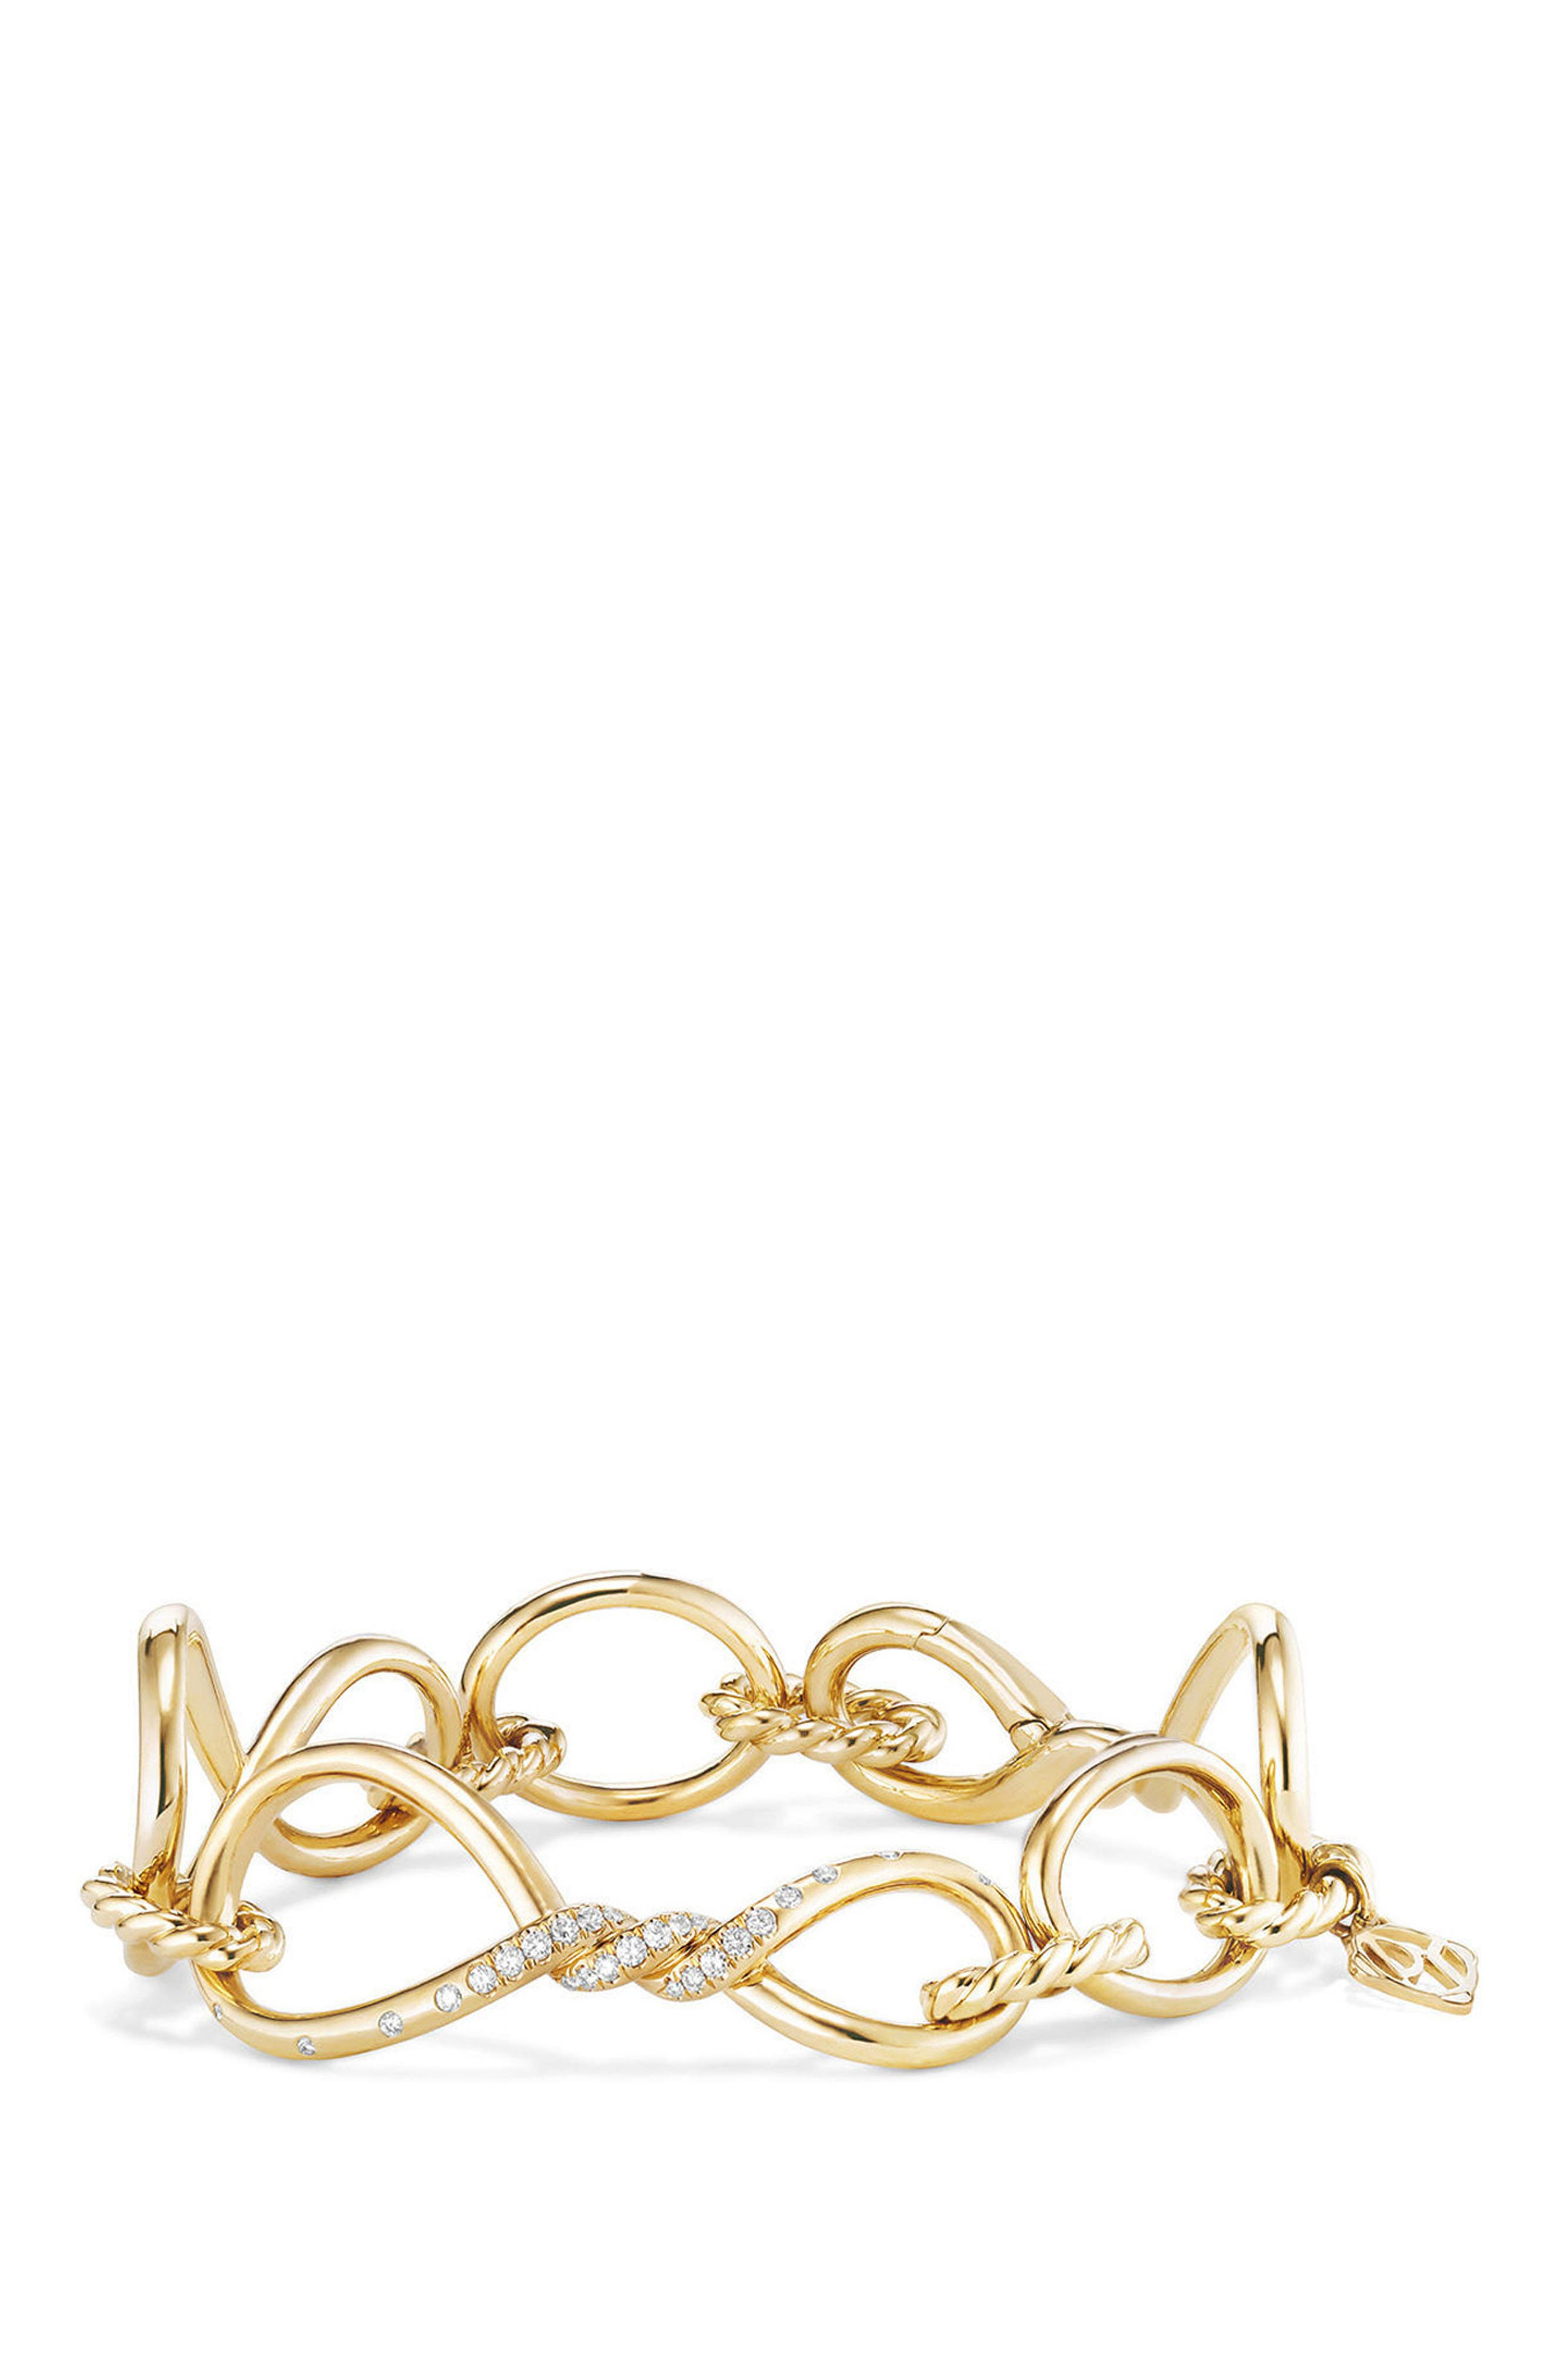 DAVID YURMAN,                             Continuance Chain Bracelet with Diamonds,                             Main thumbnail 1, color,                             YELLOW GOLD